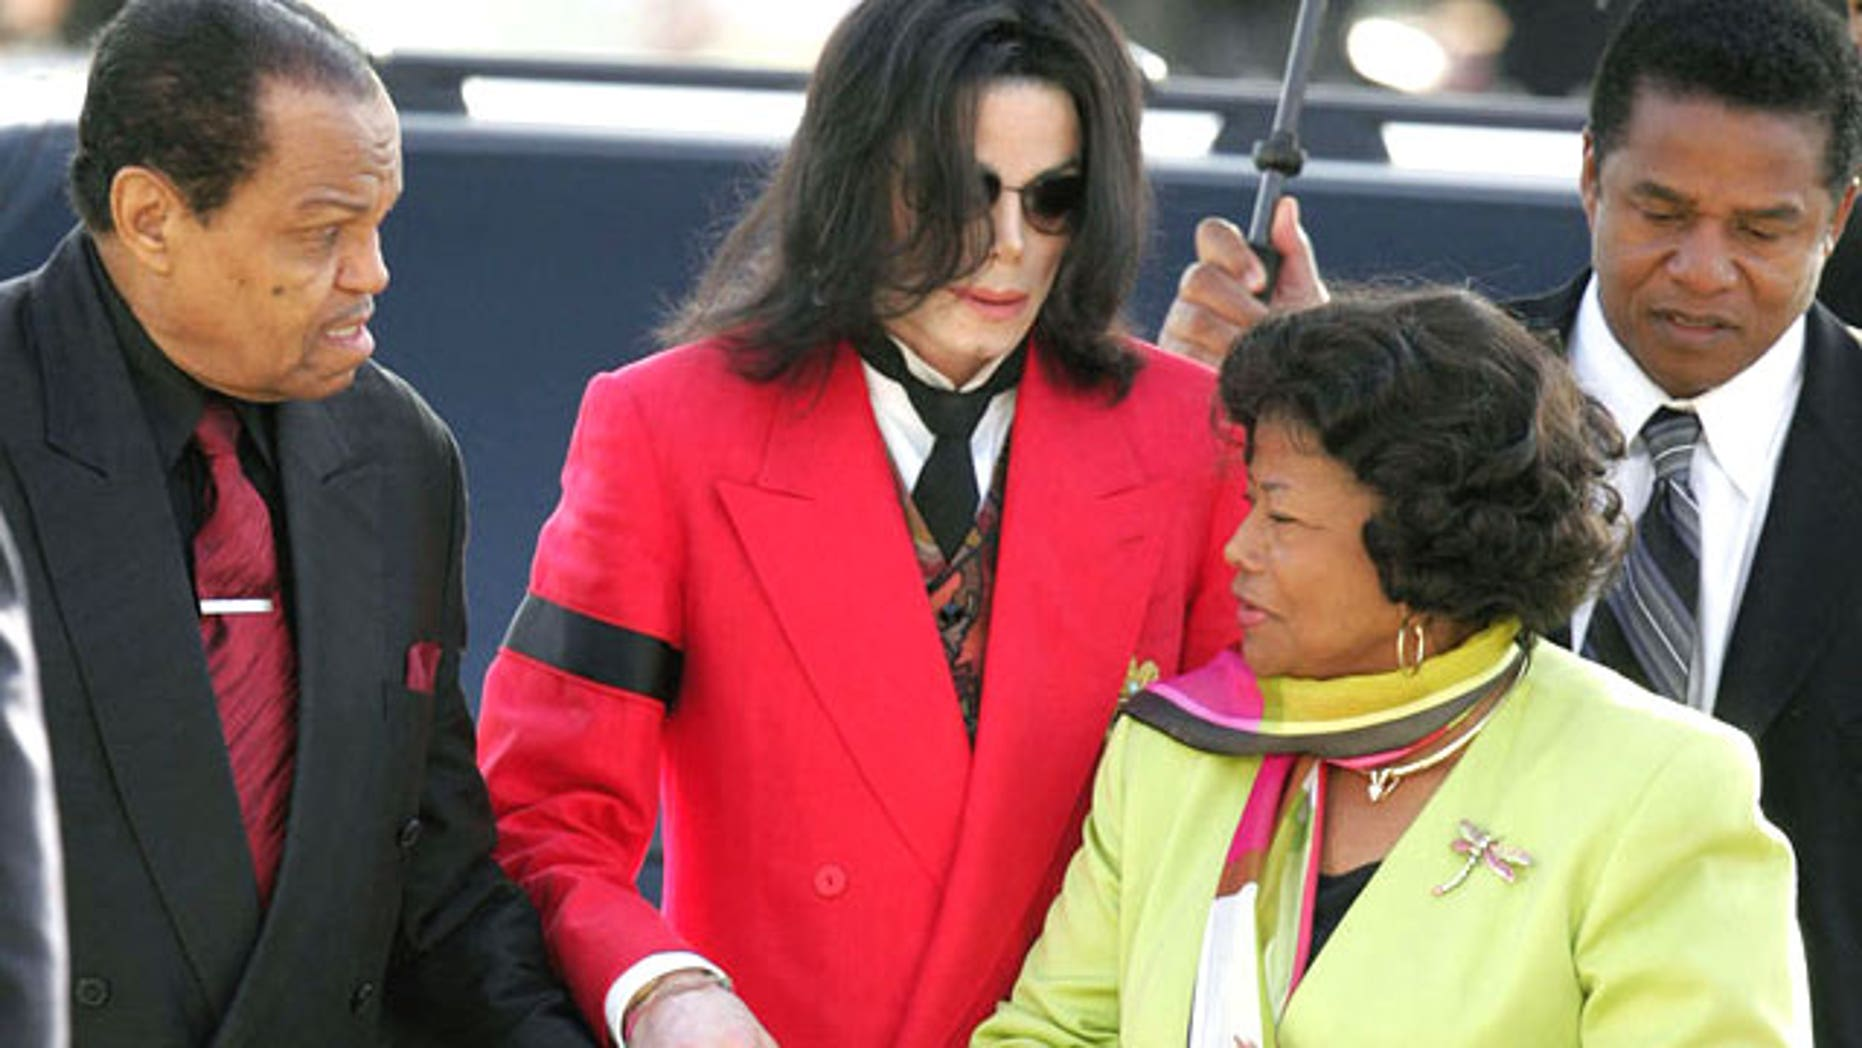 Joseph Jackson, Michael Jackson, Katherine Jackson, and Jackie Jackson arrive at Santa Barbara County Superior Court for Michael's molestation trial on March 14, 2005. (AP)